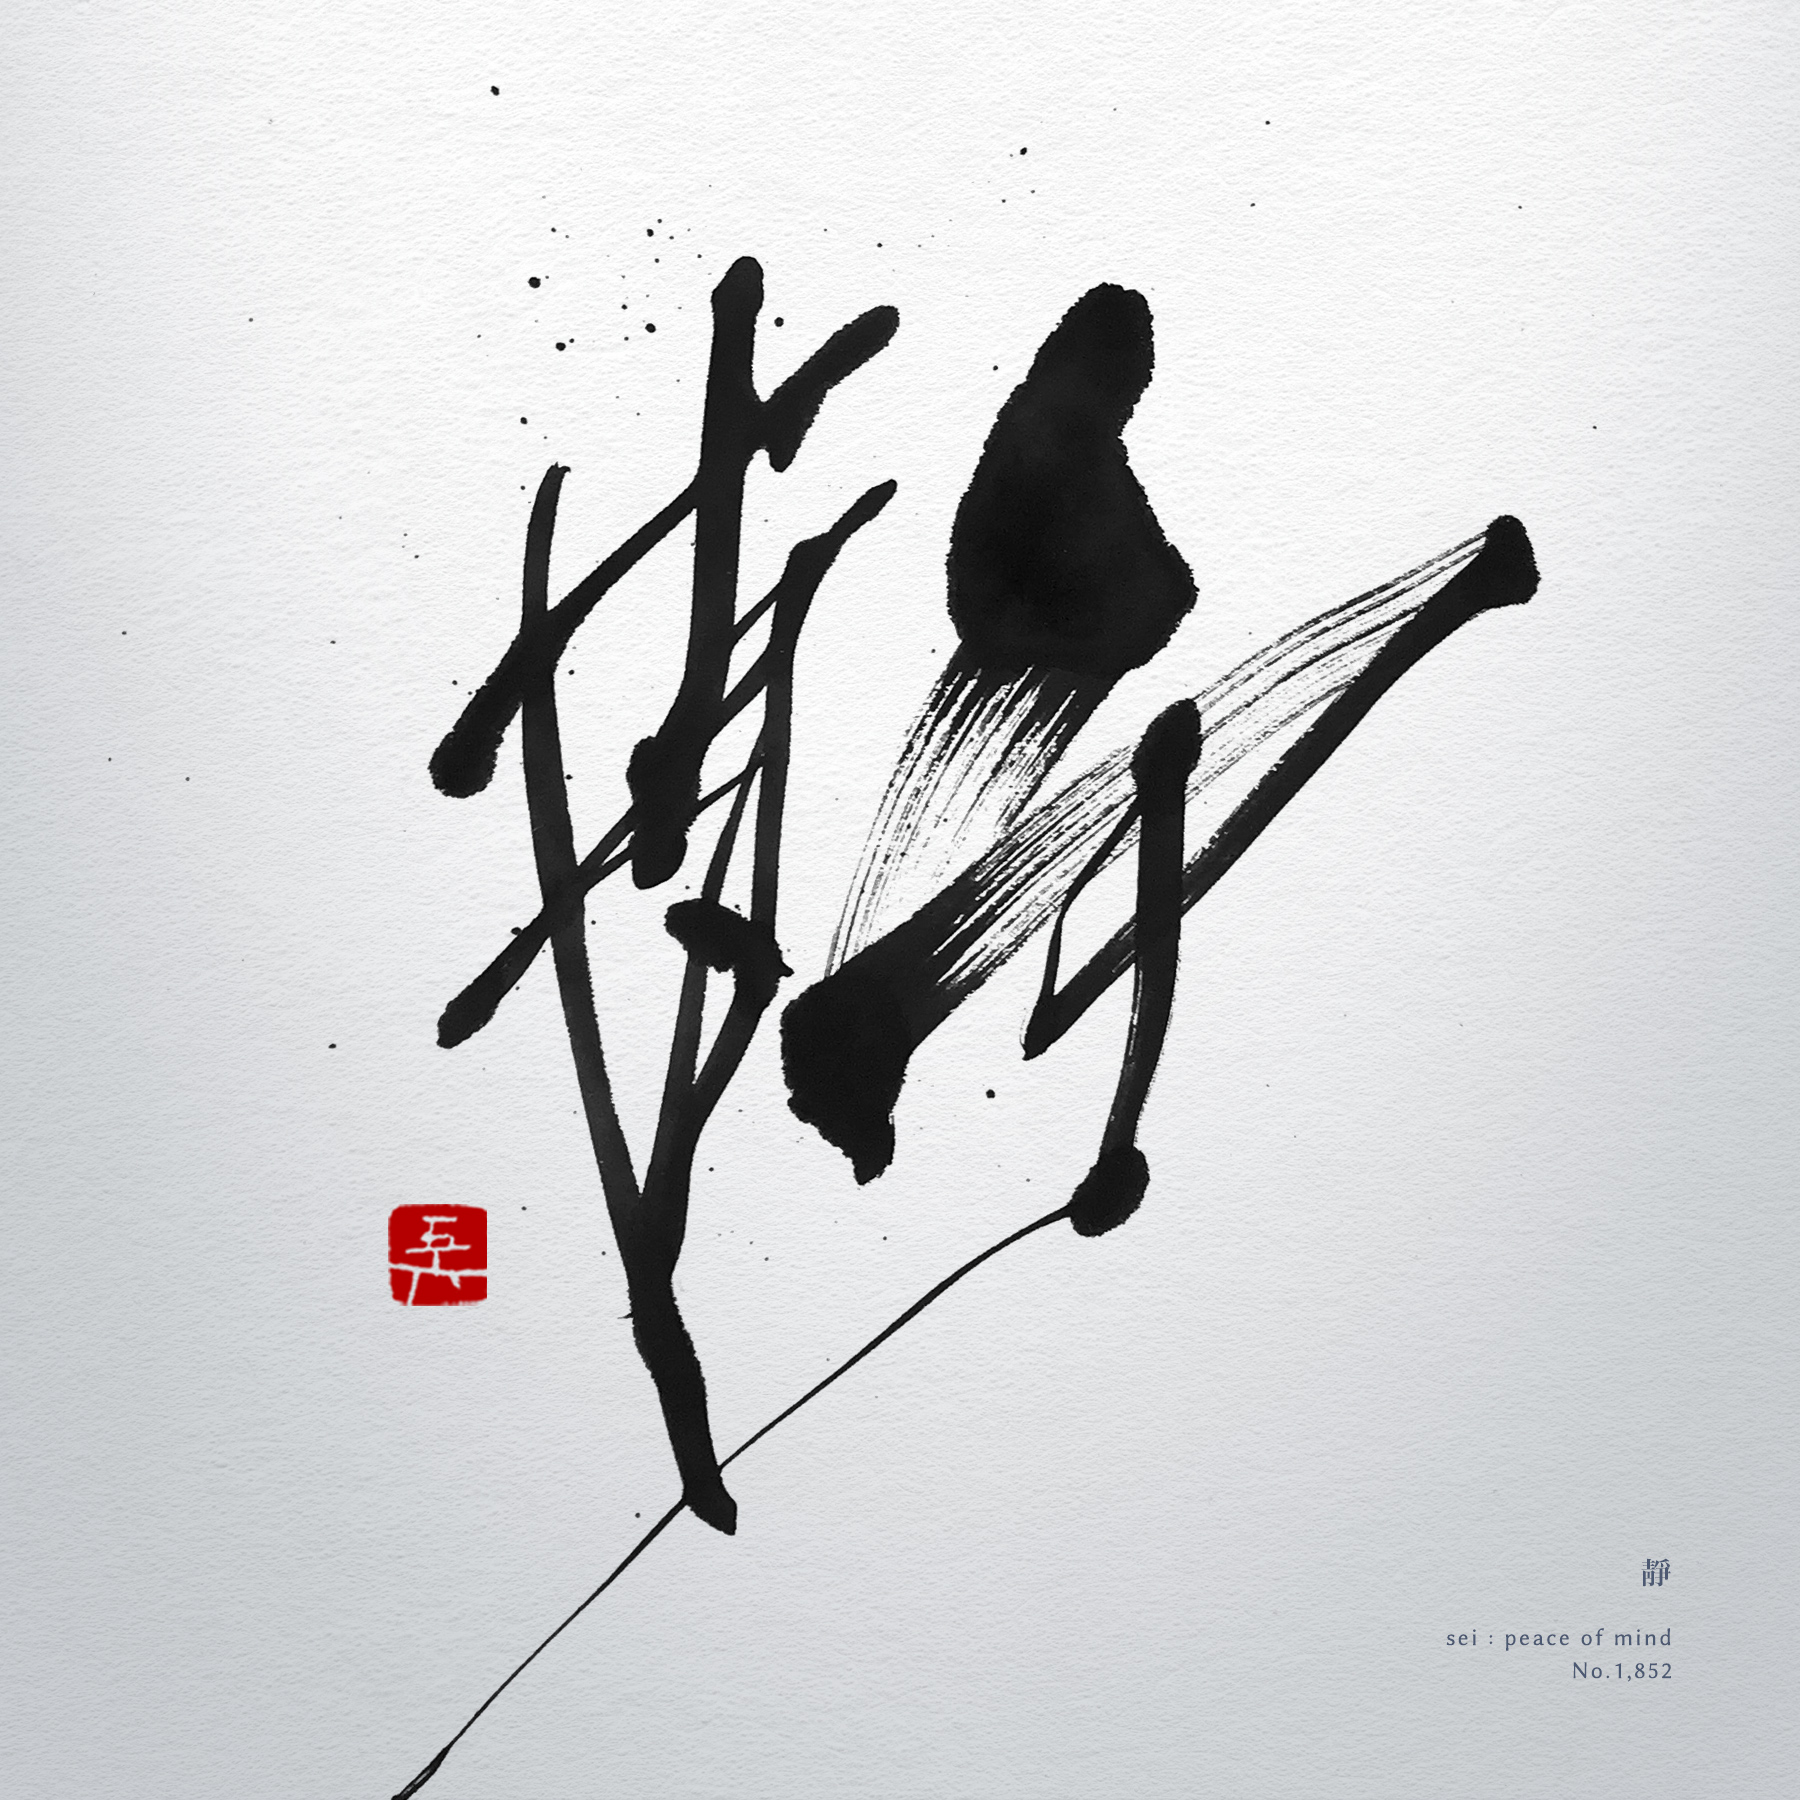 靜 | peace of mind 書道作品 japaneseart japanese calligraphy 書家 田川悟郎 Goroh Tagawa